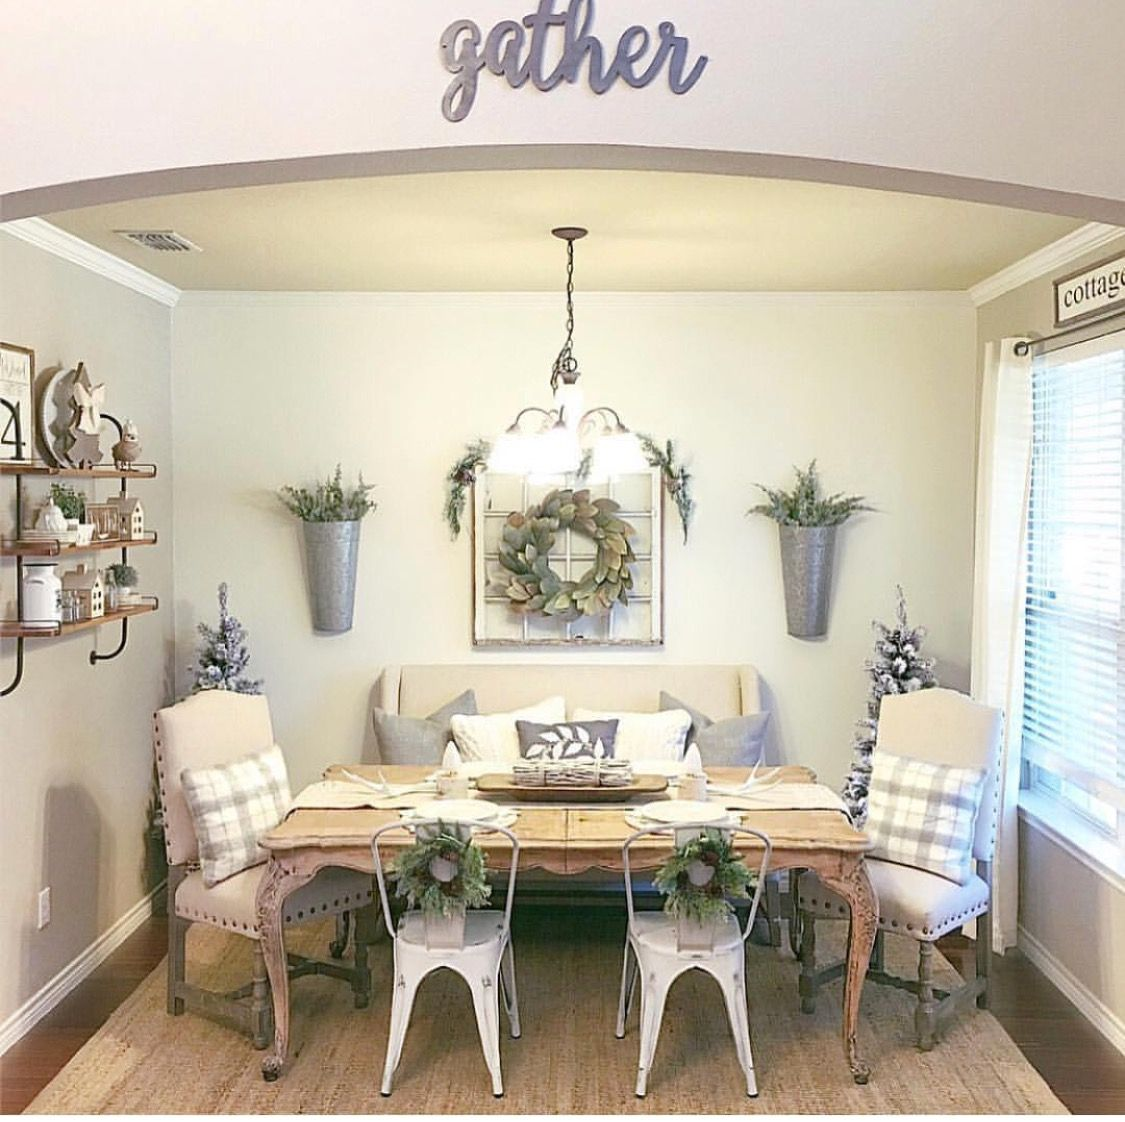 Love the gather sign Love the gather